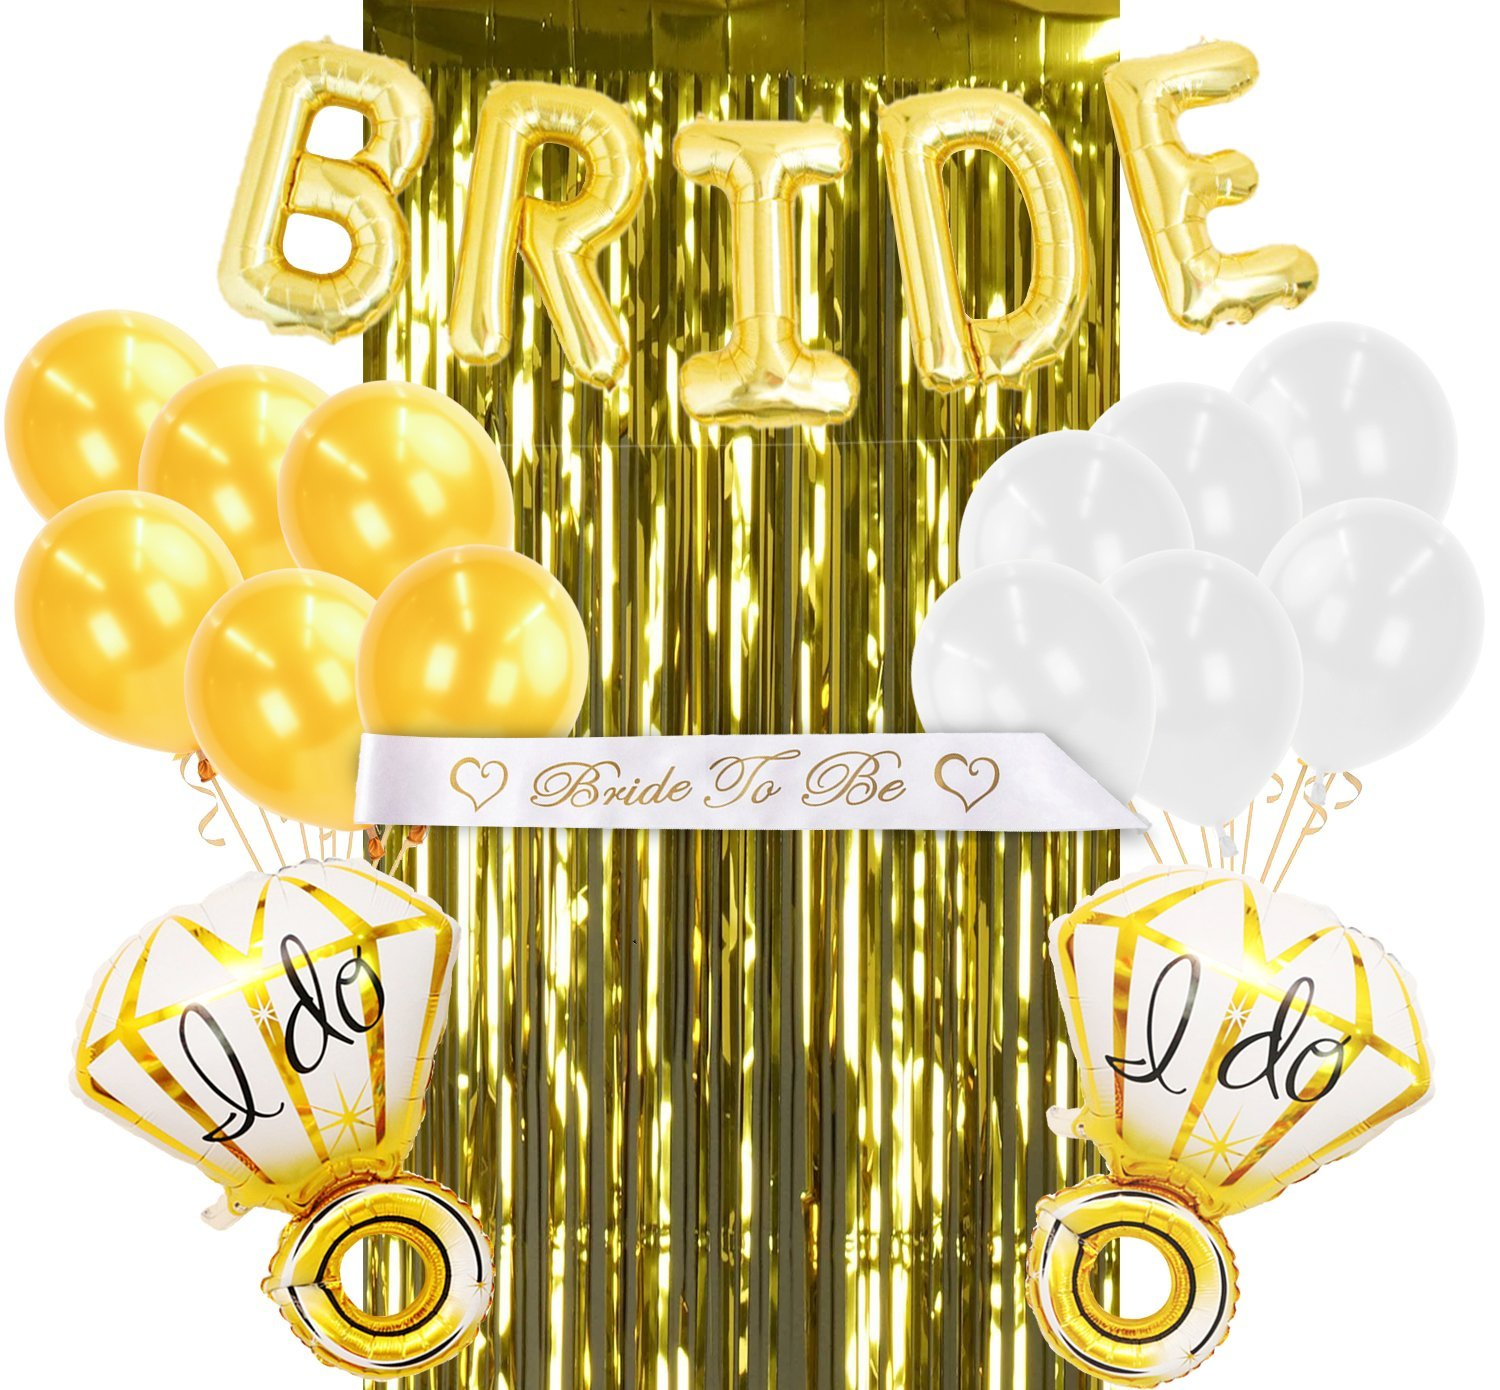 Gold Bachelorette Party & Bridal Shower Decorations, Mylar Bride & Ring Balloons, Foil Curtain, Sash   B07CT8SC35